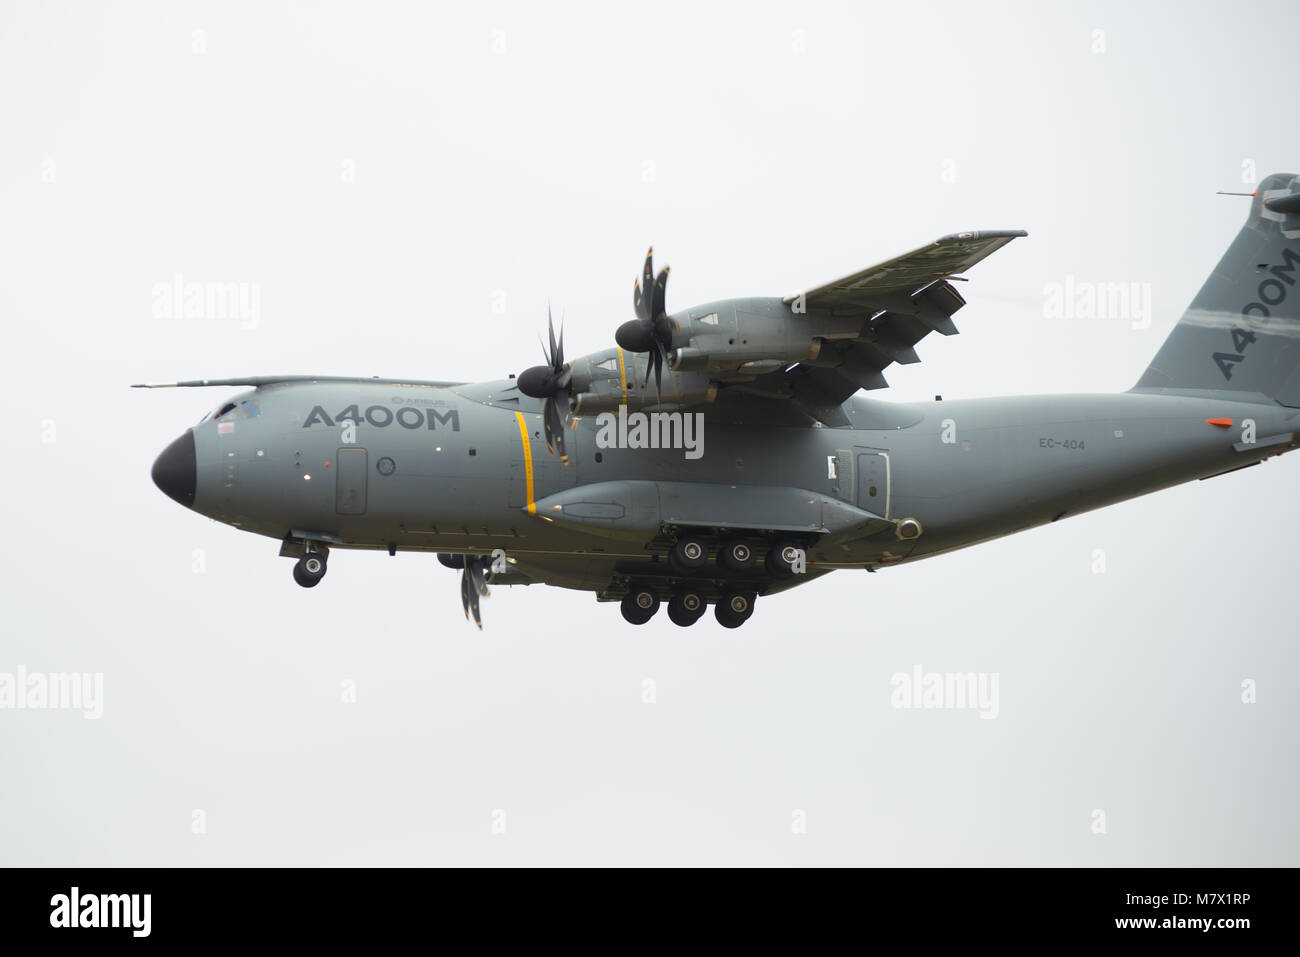 huge airbus a400 at UK airshow with undercarriage - Stock Image